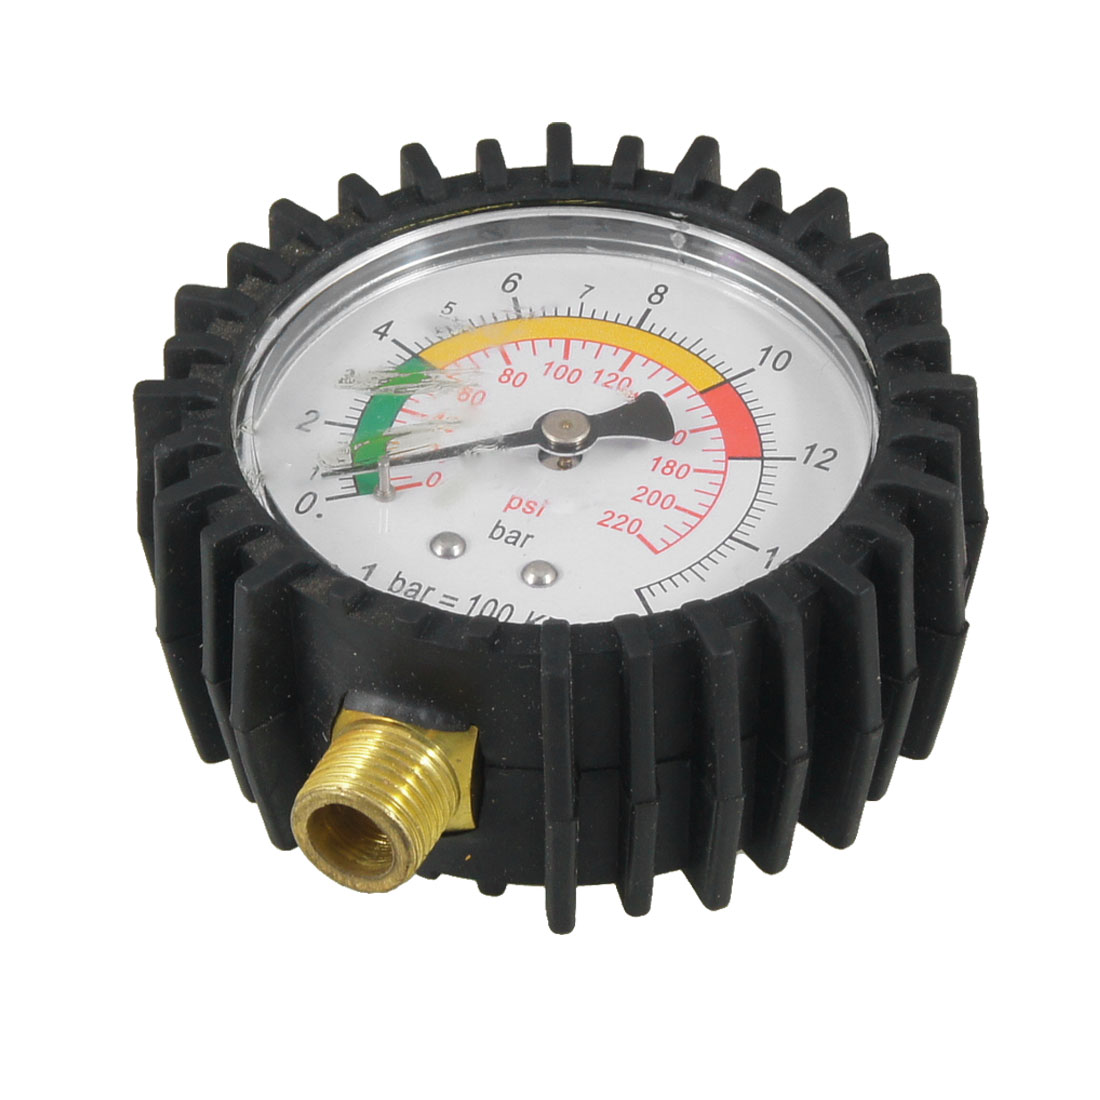 Black Auto Car Motorcycle Tire Air Pressure Gauge Meter 0-16 Bar 0-220 Psi